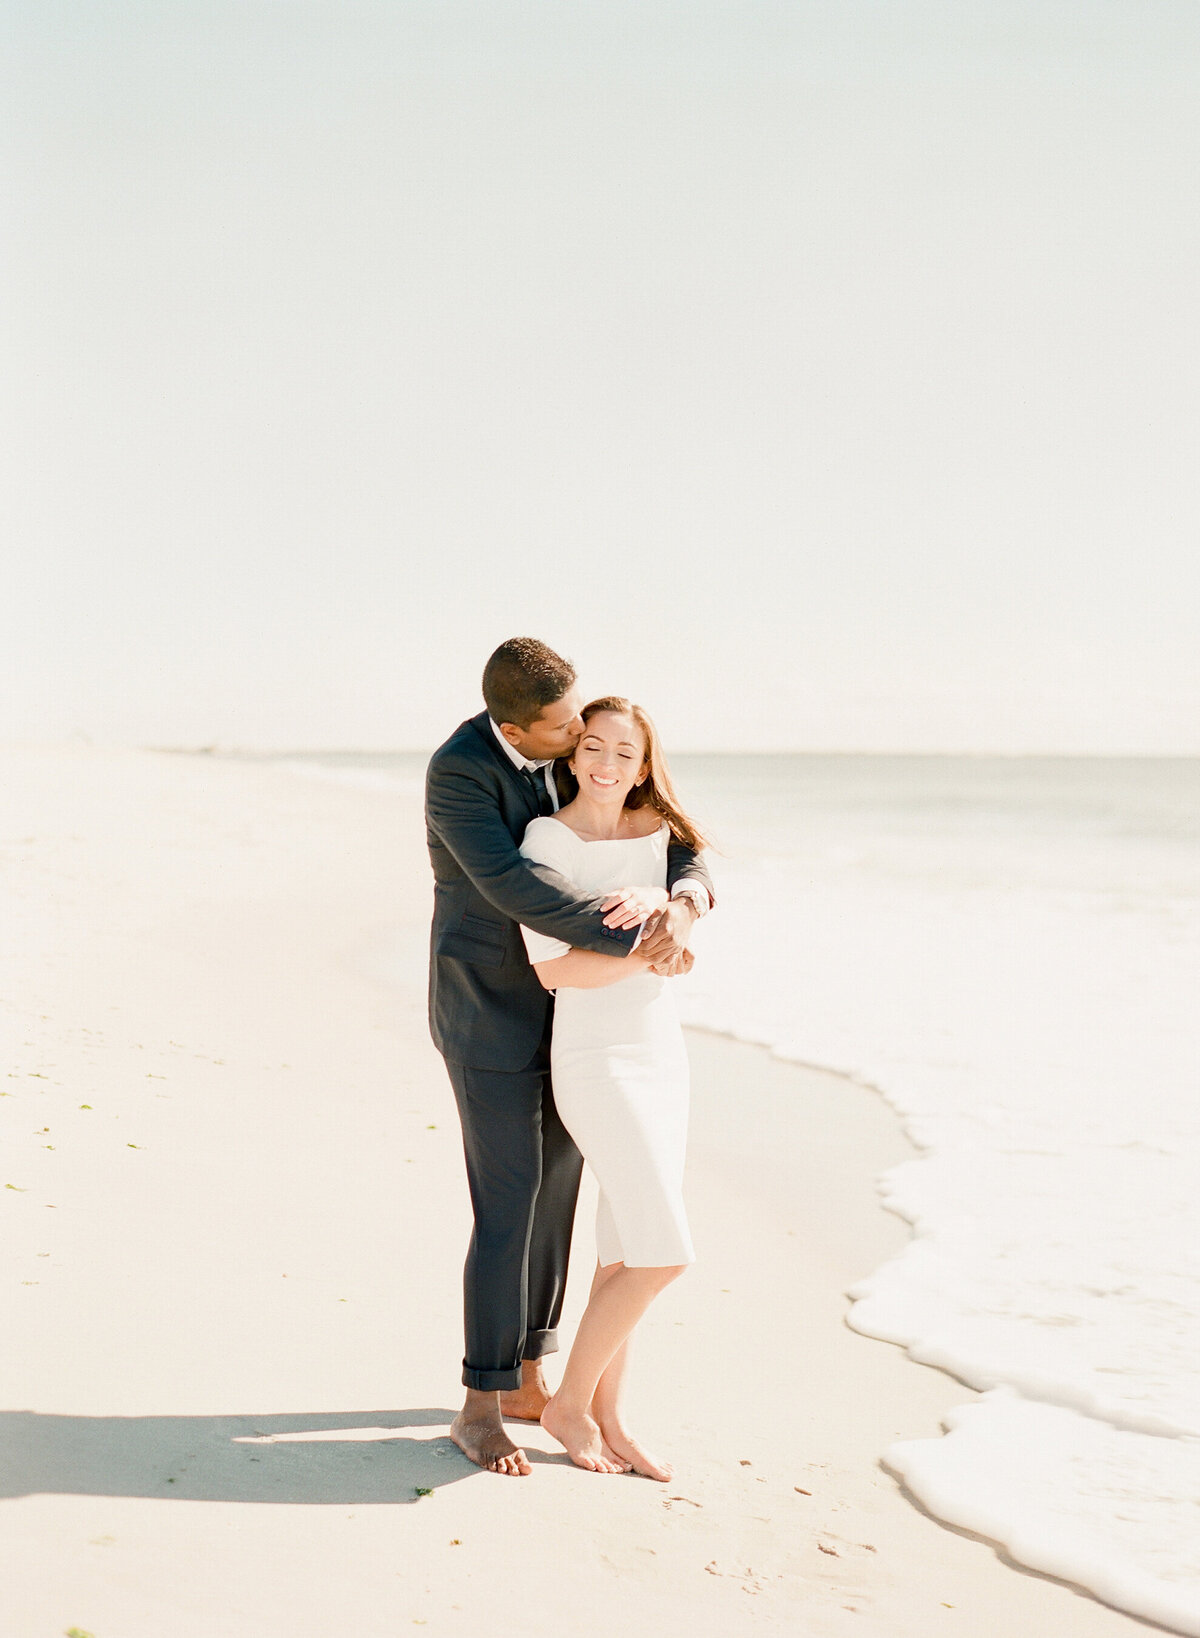 682 TWAH-DOUGHERTY-BEACH-ENGAGEMENT-SESSION